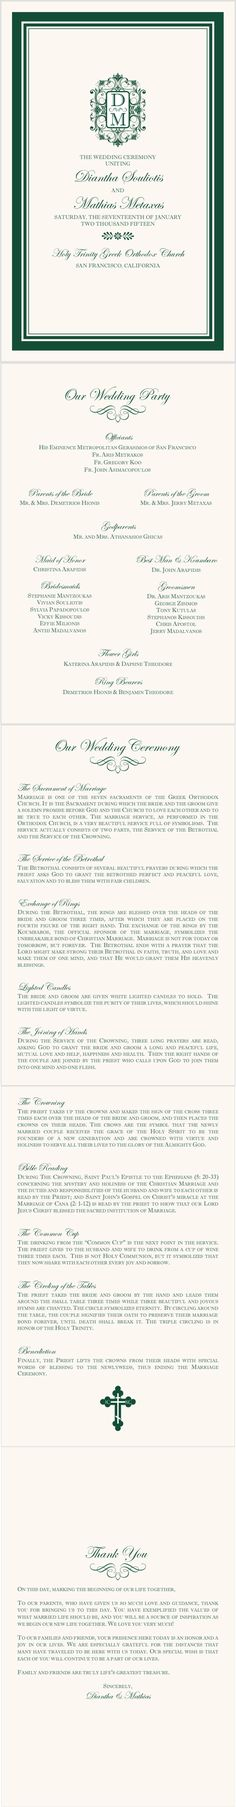 Greek Orthodox 03 Greek/Russian Orthodox Wedding Programs from Documents and Designs